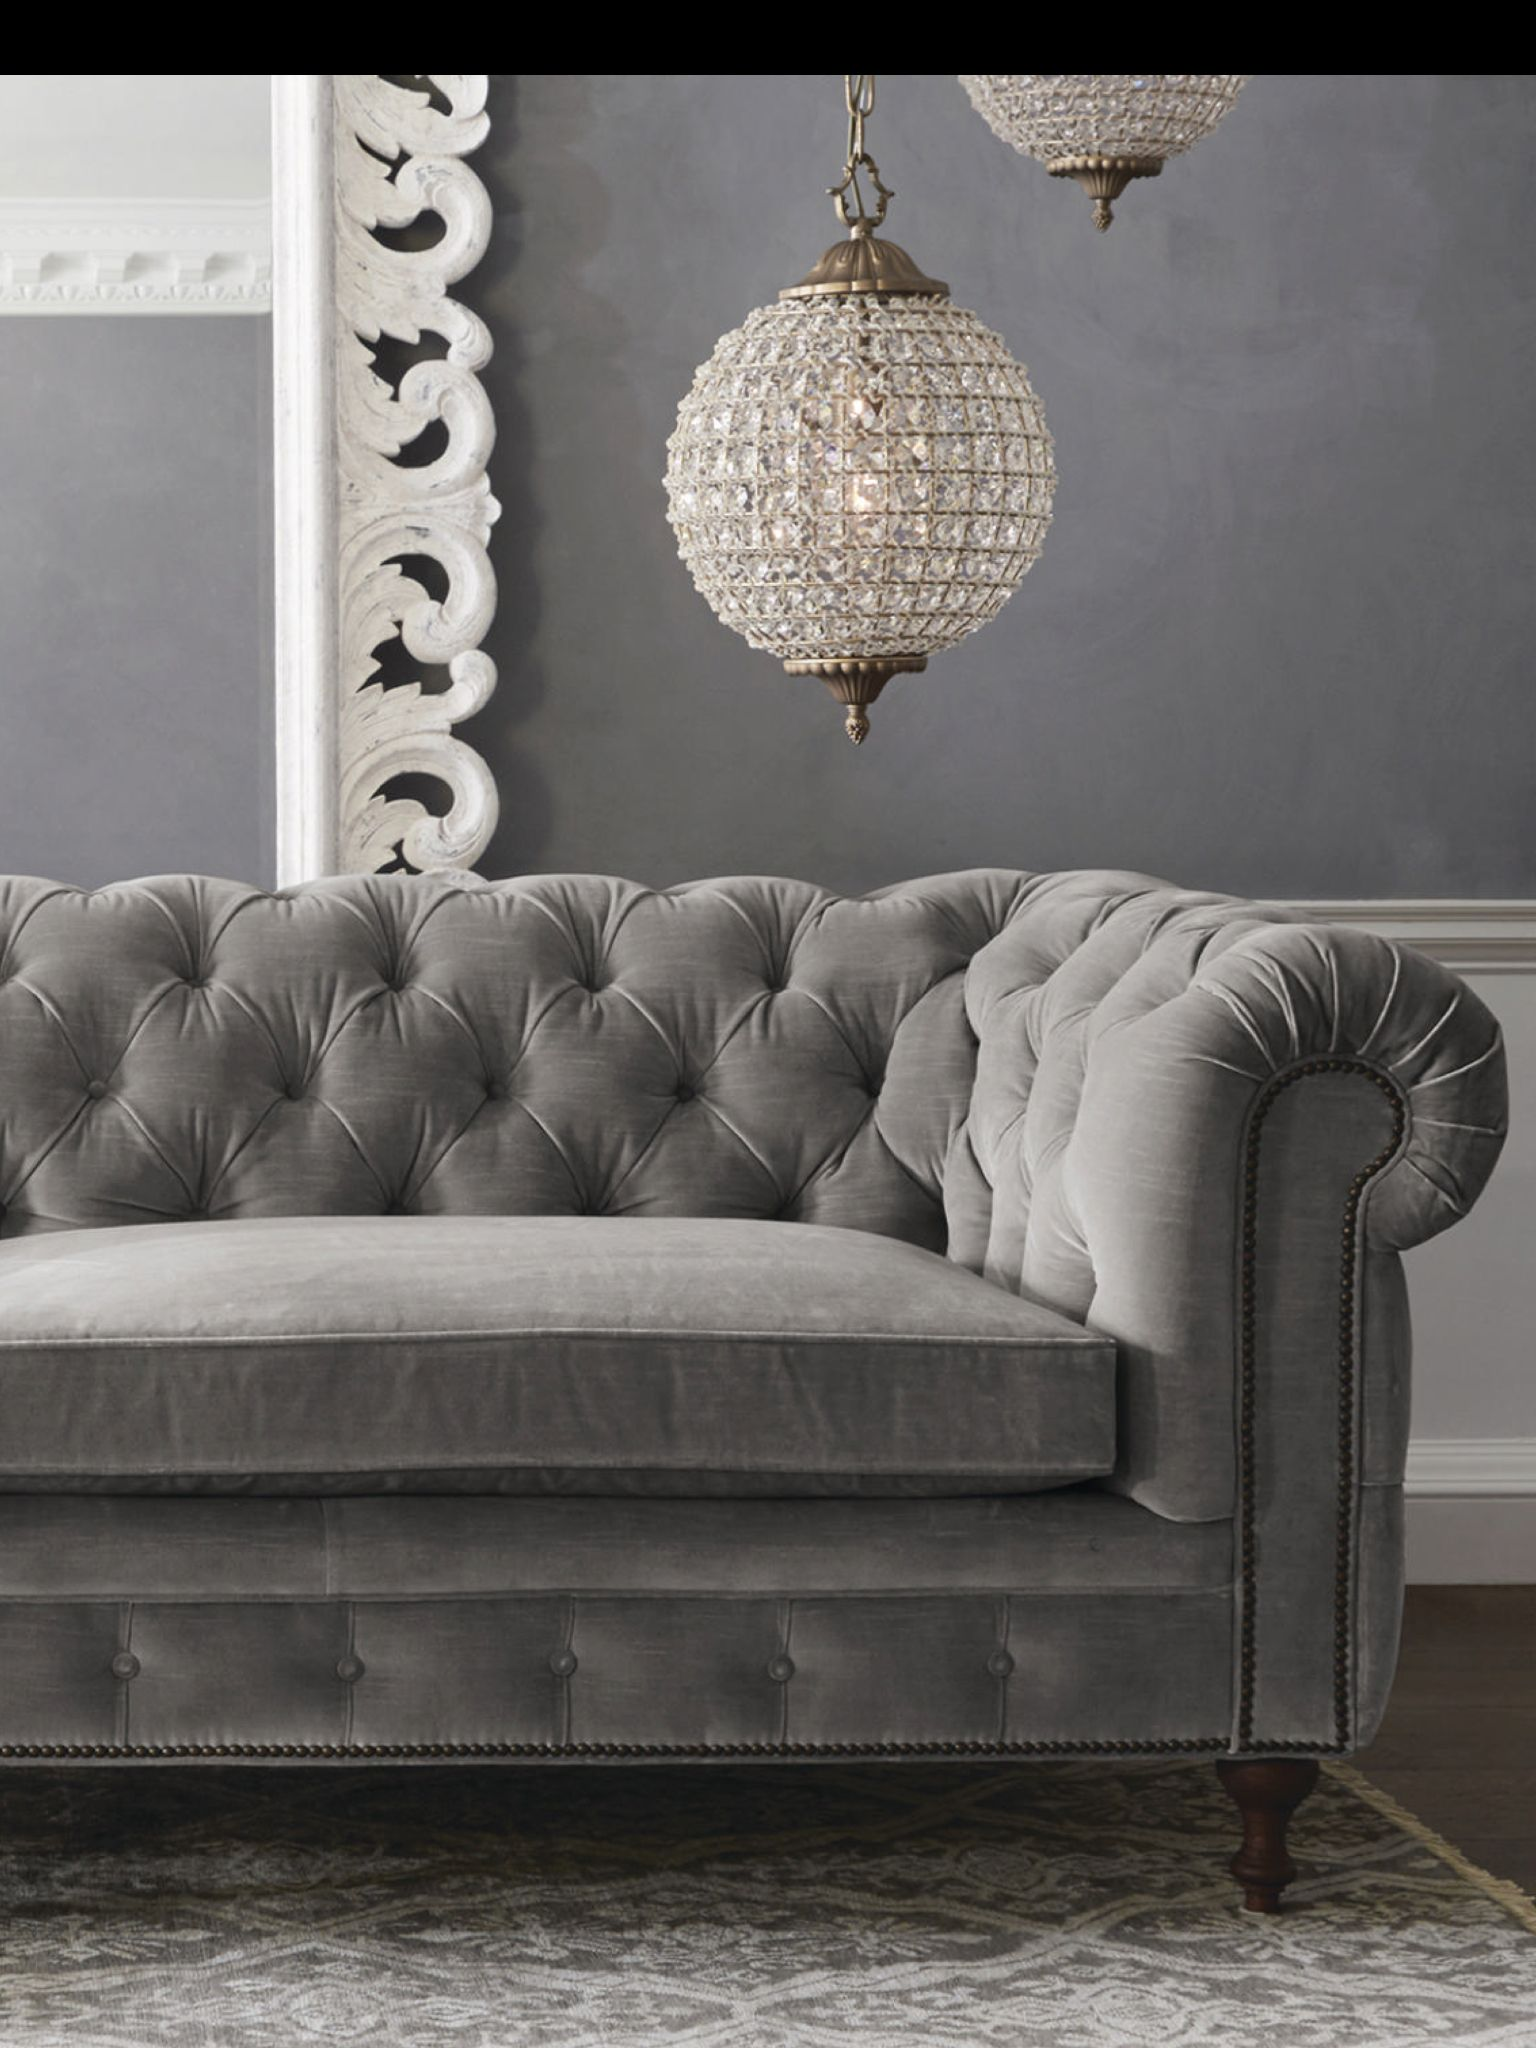 Grey Tufted Sofa G R E Y Pinterest Grey Tufted Sofa